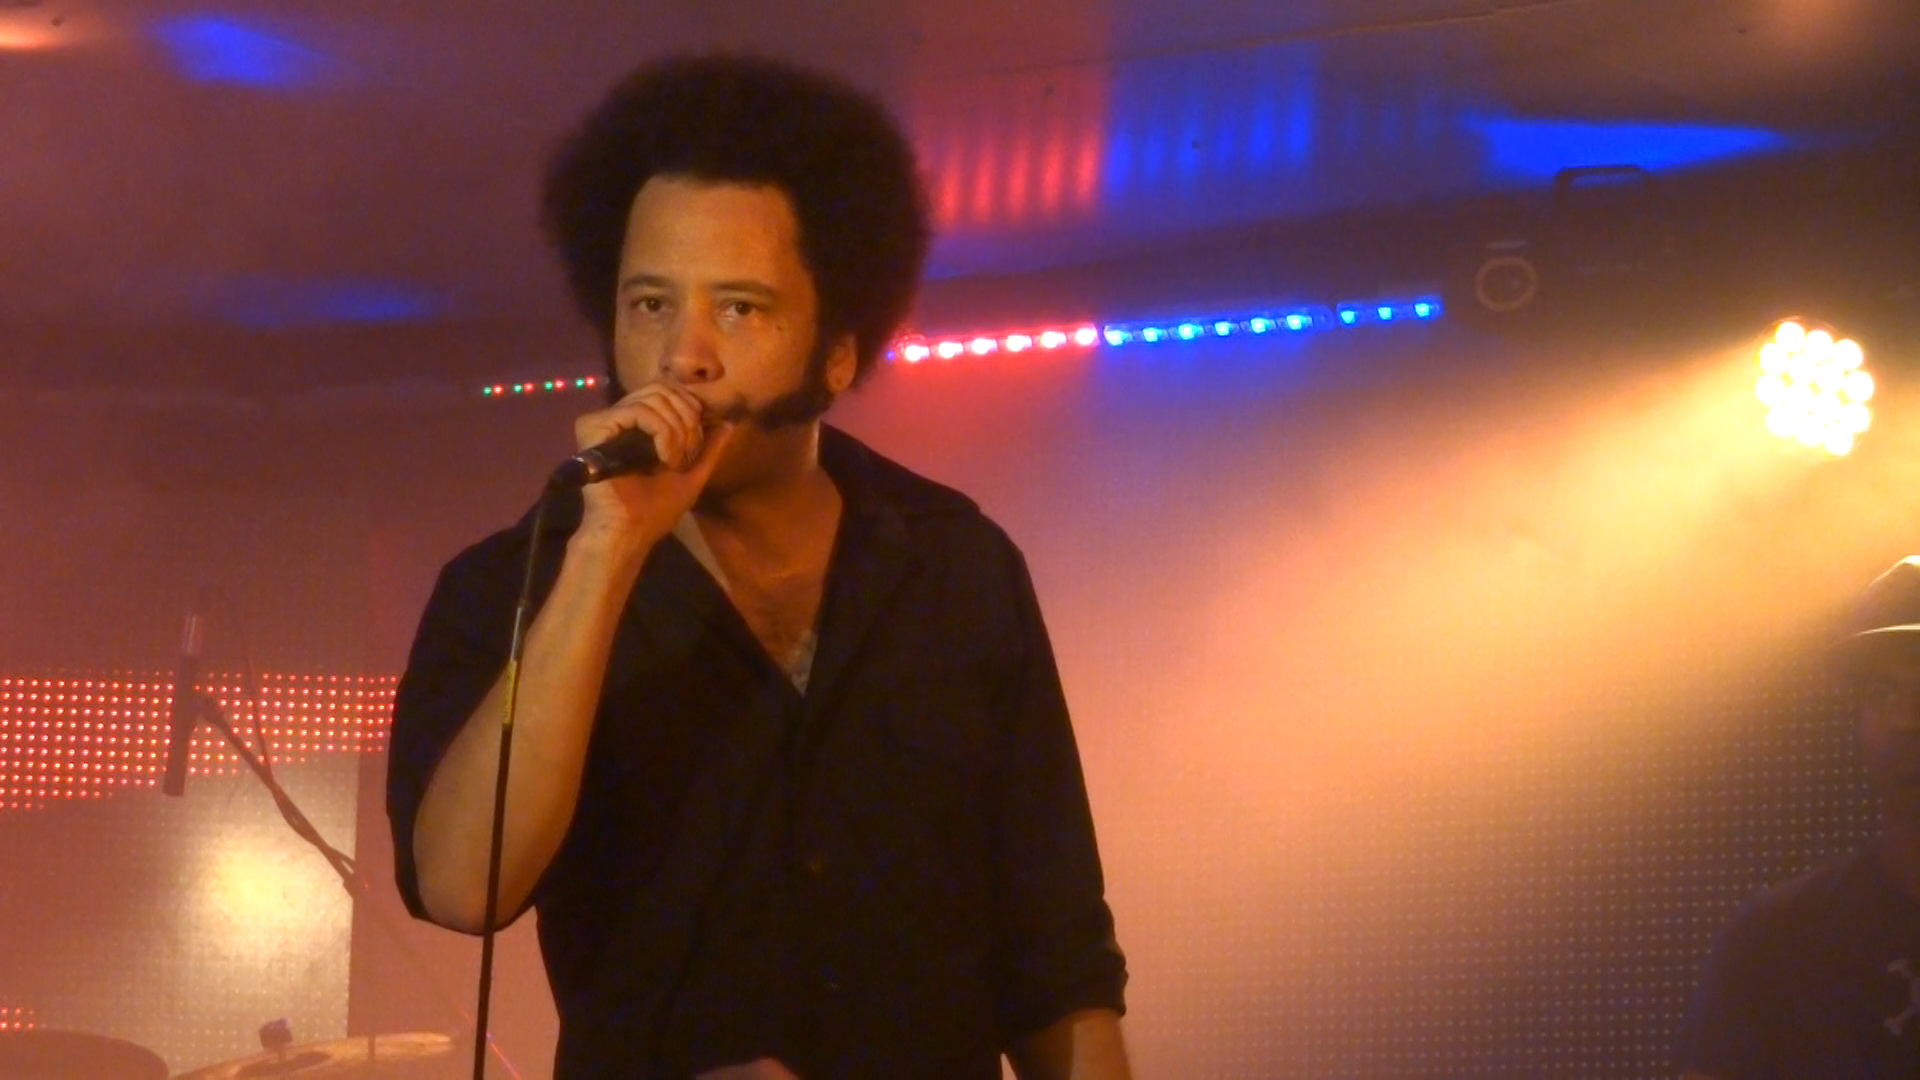 Video Archive- 2012-11-18: The Coup at Club 9ONE9